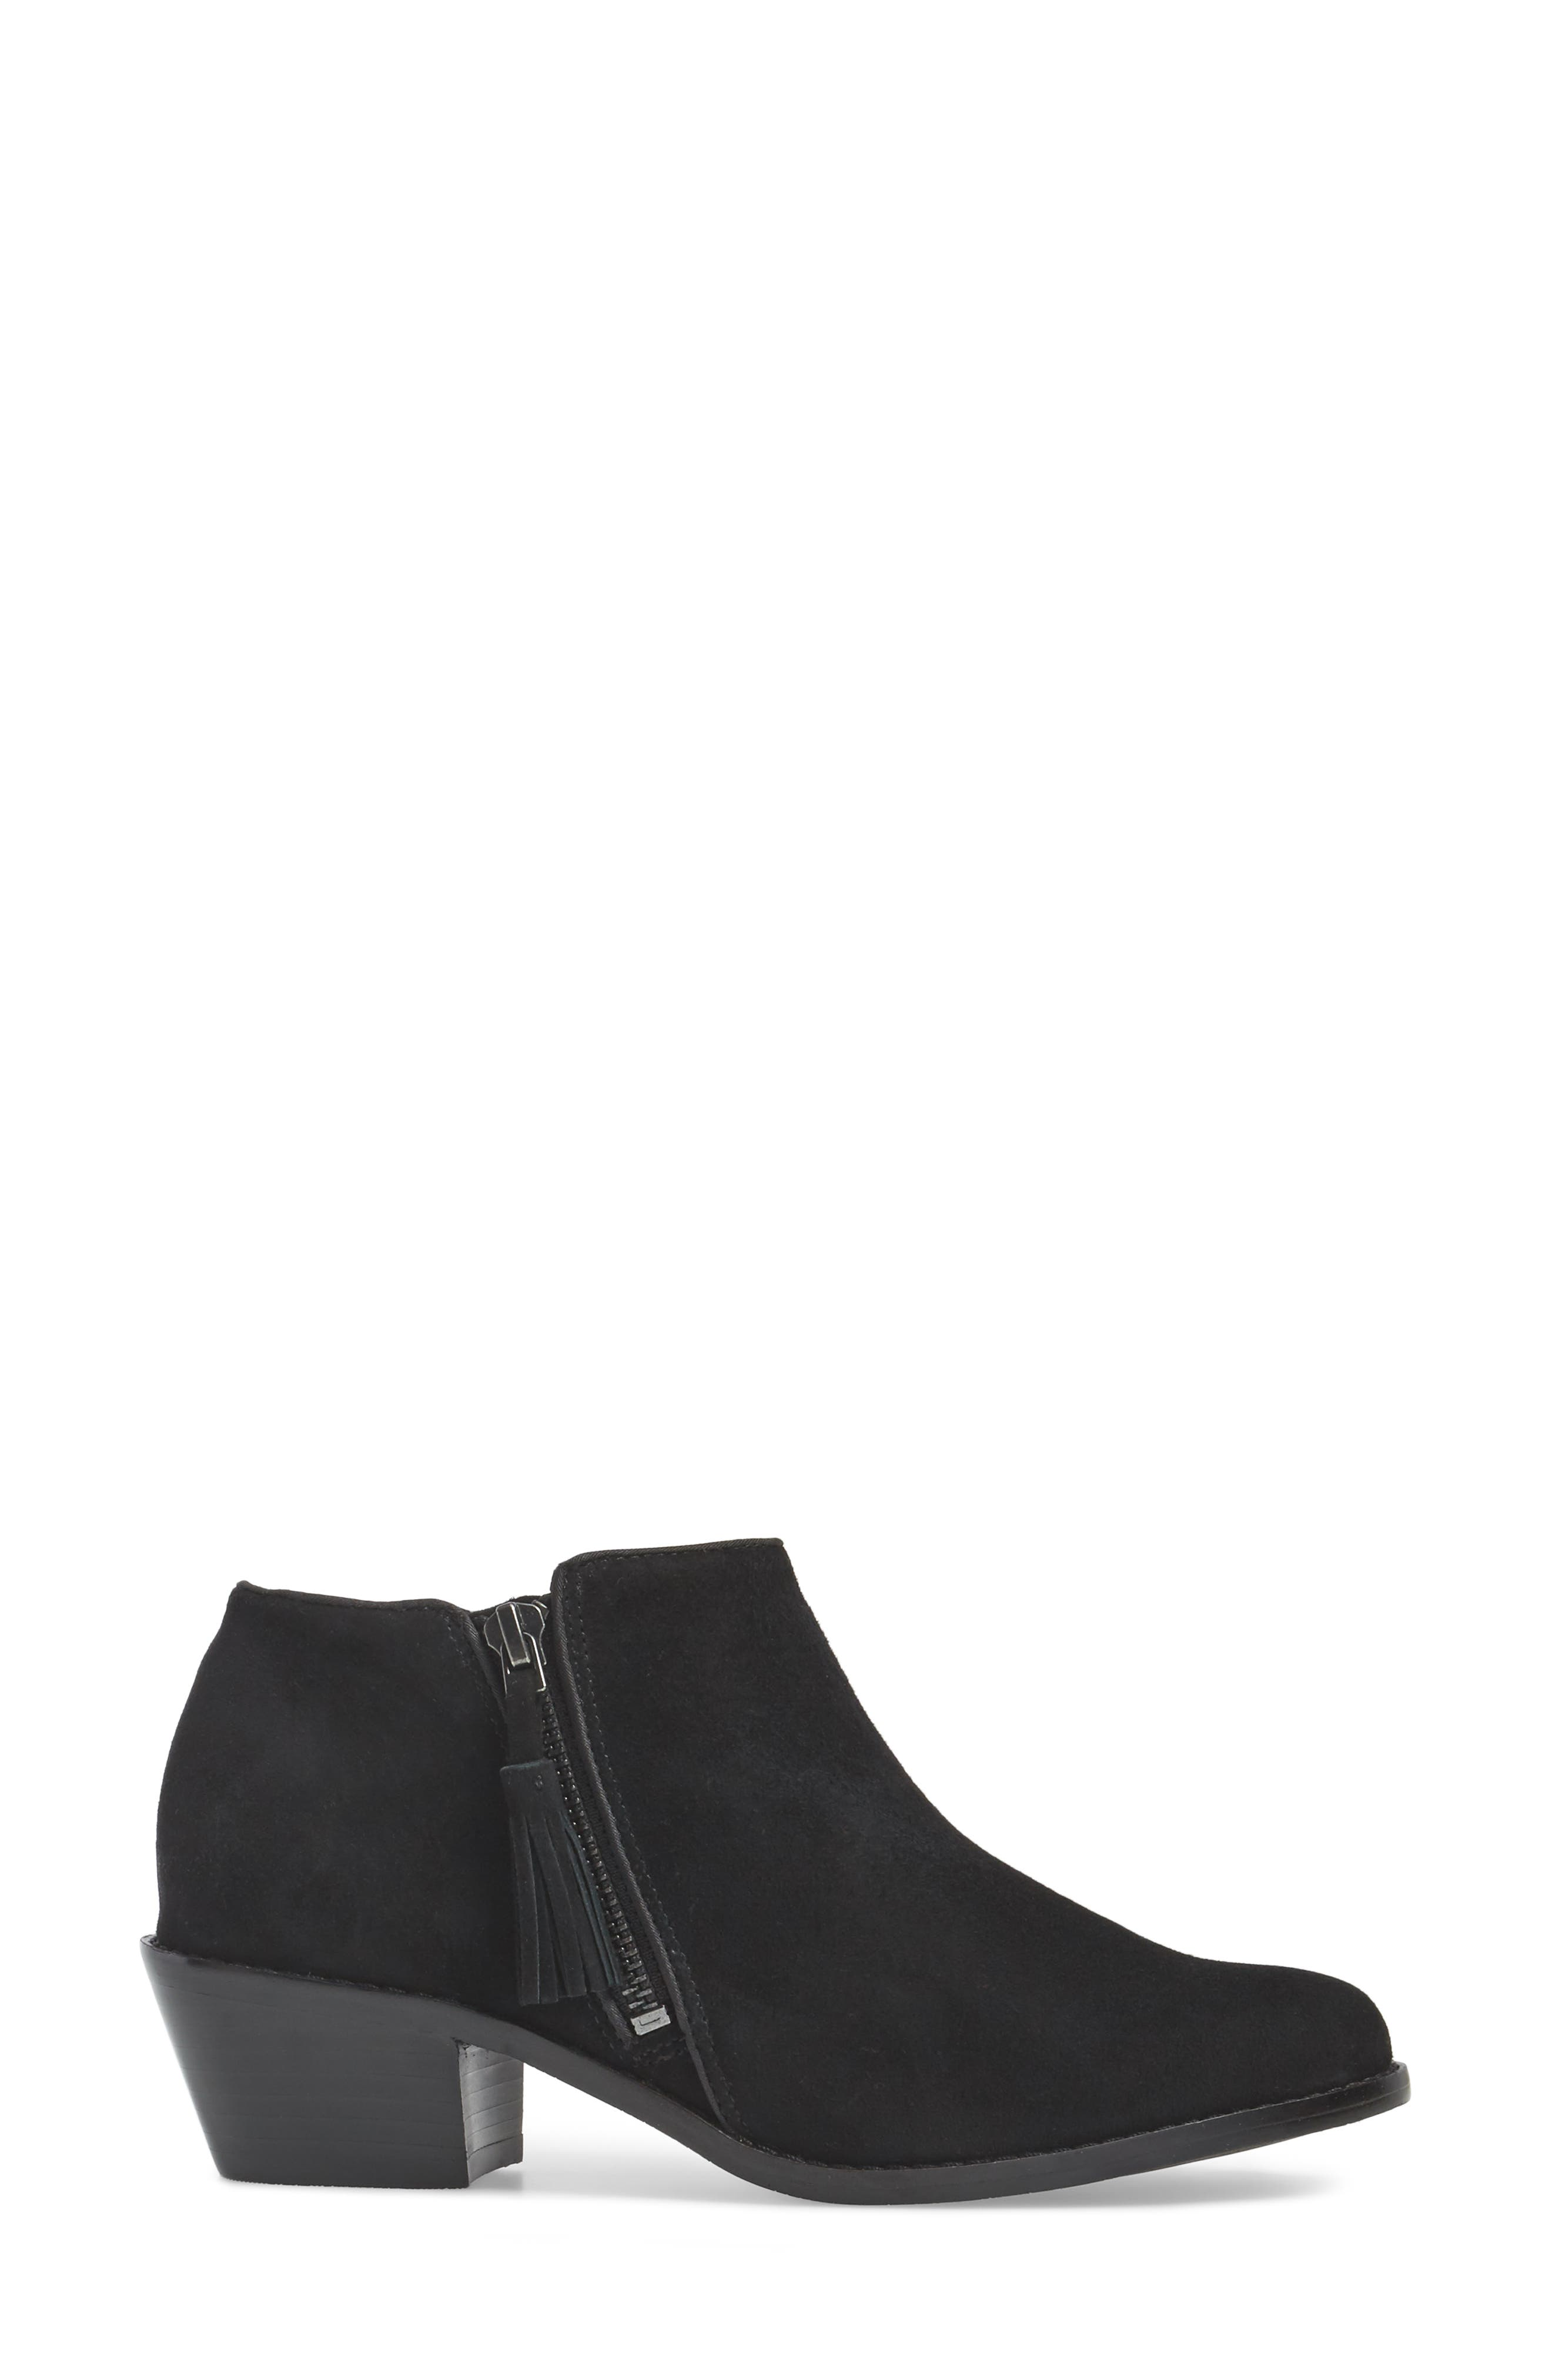 Serena Ankle Boot,                             Alternate thumbnail 3, color,                             Black Suede